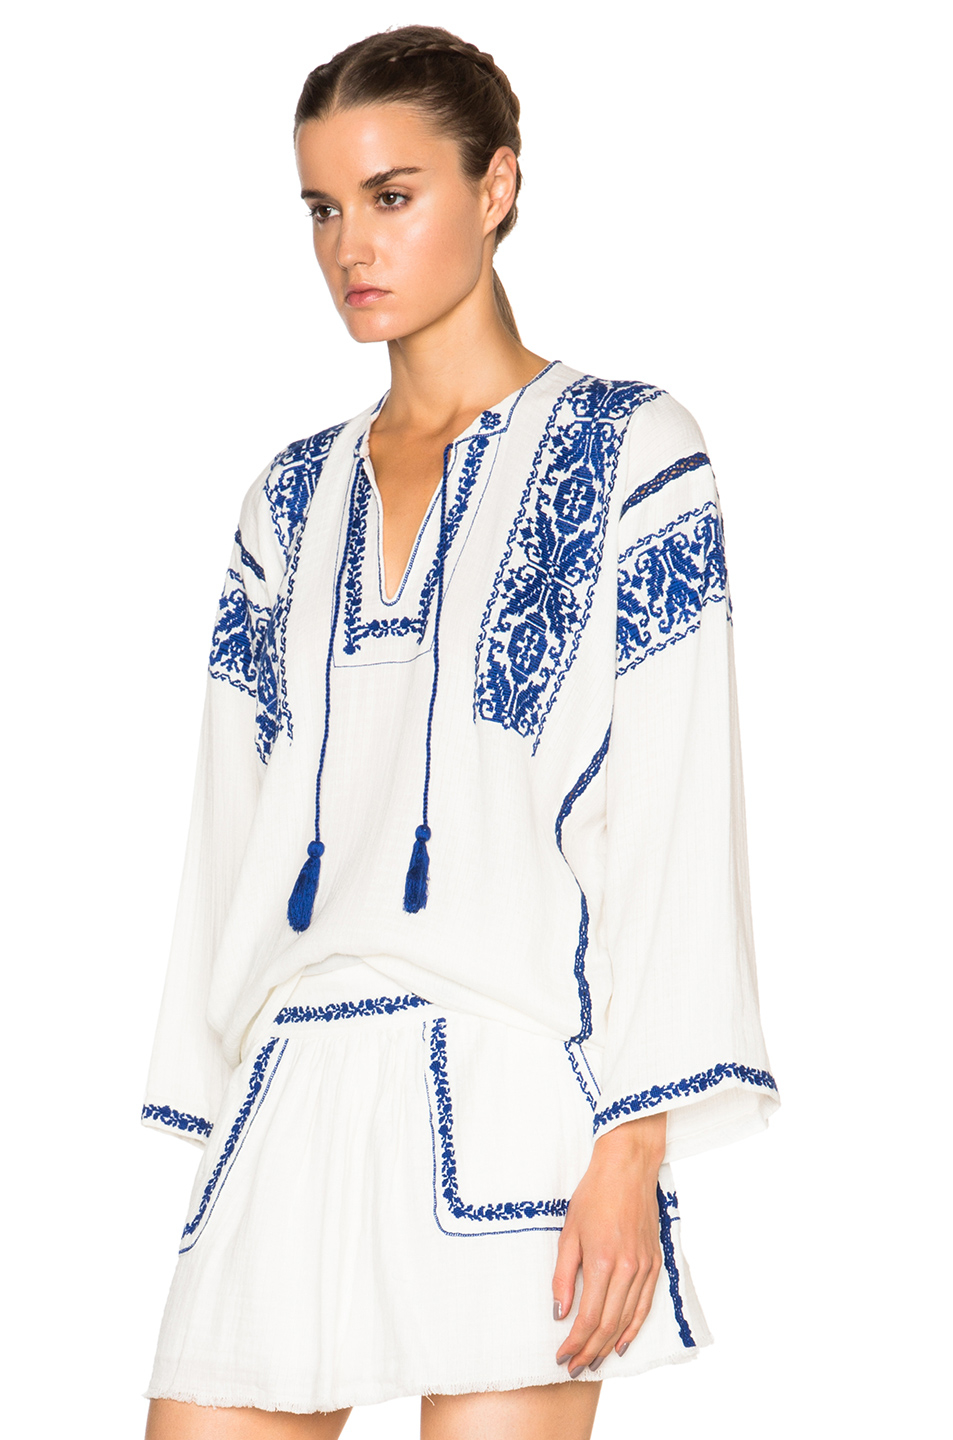 lyst toile isabel marant vince embroidery blouse in white. Black Bedroom Furniture Sets. Home Design Ideas